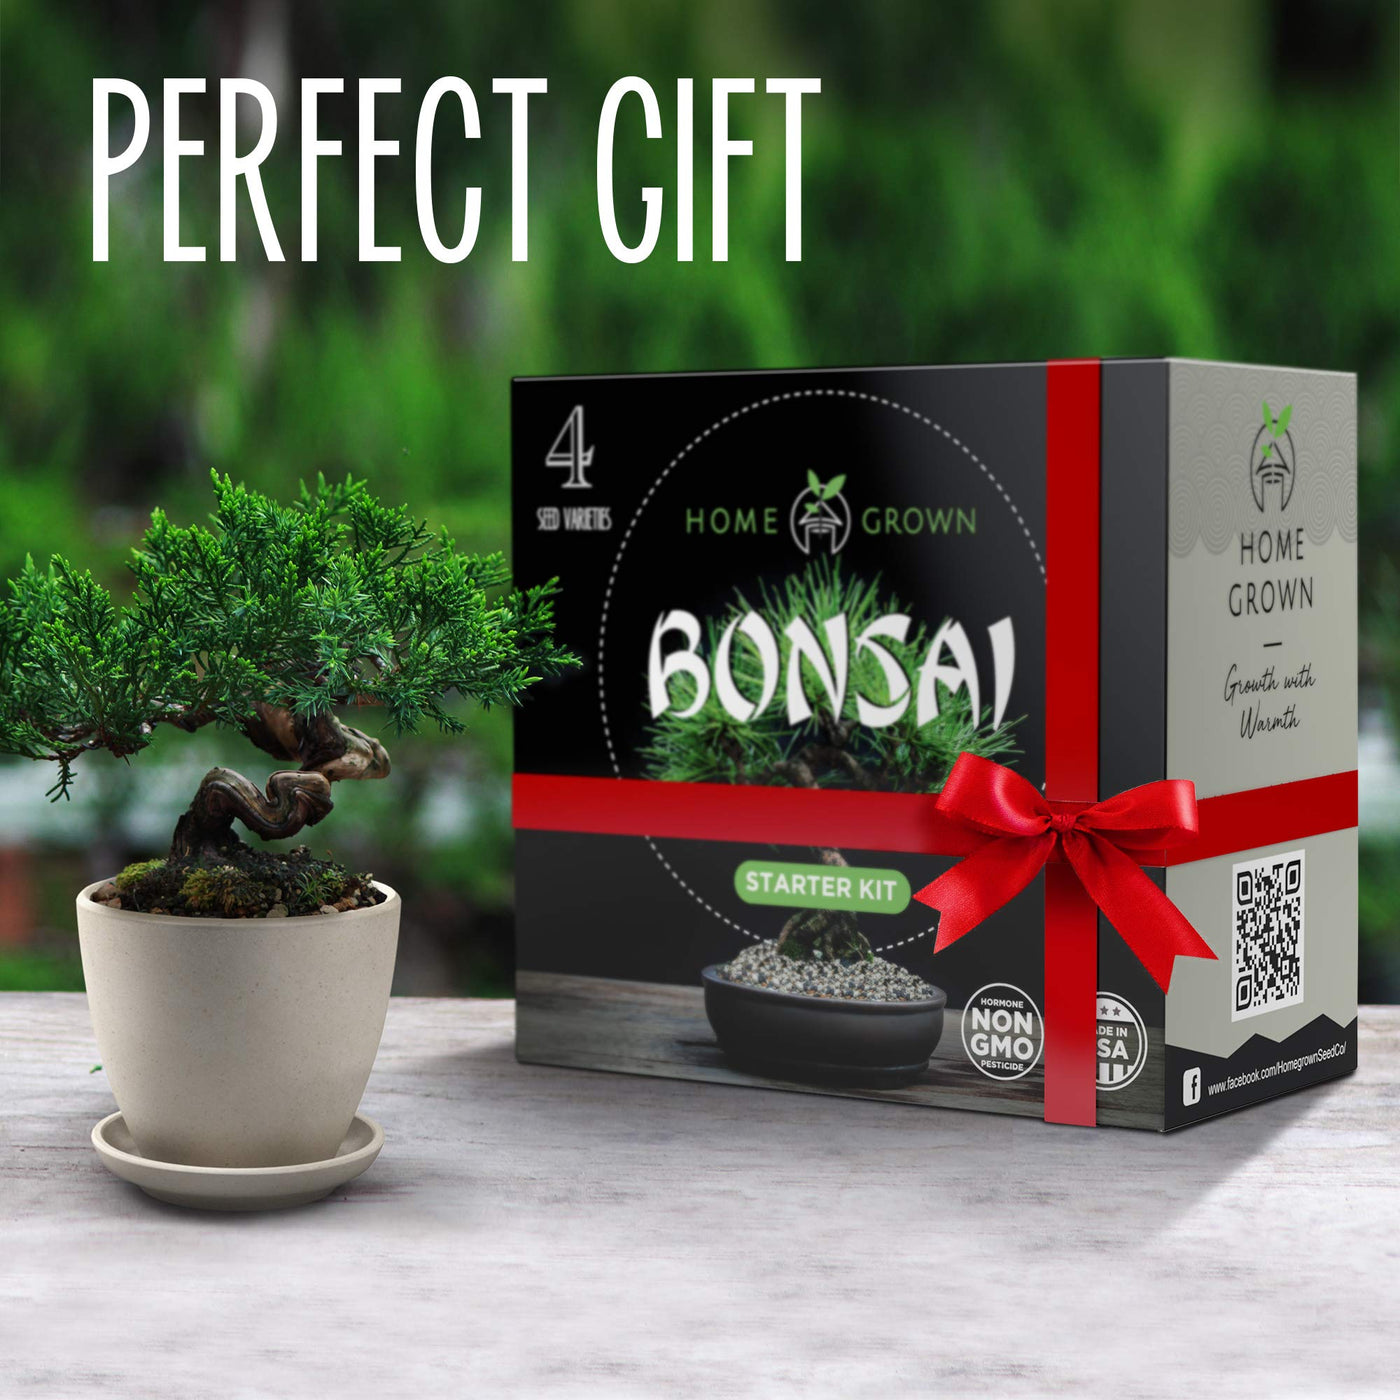 Home Grown Bonsai Tree Kit Bonsai Tree Starter Kit With 4 Seeds Types Incl Purple Bonsai Tree Indoor Growing Plant Gifts For Moms Who Have Everything Seed Starter Kit For Kids Diy